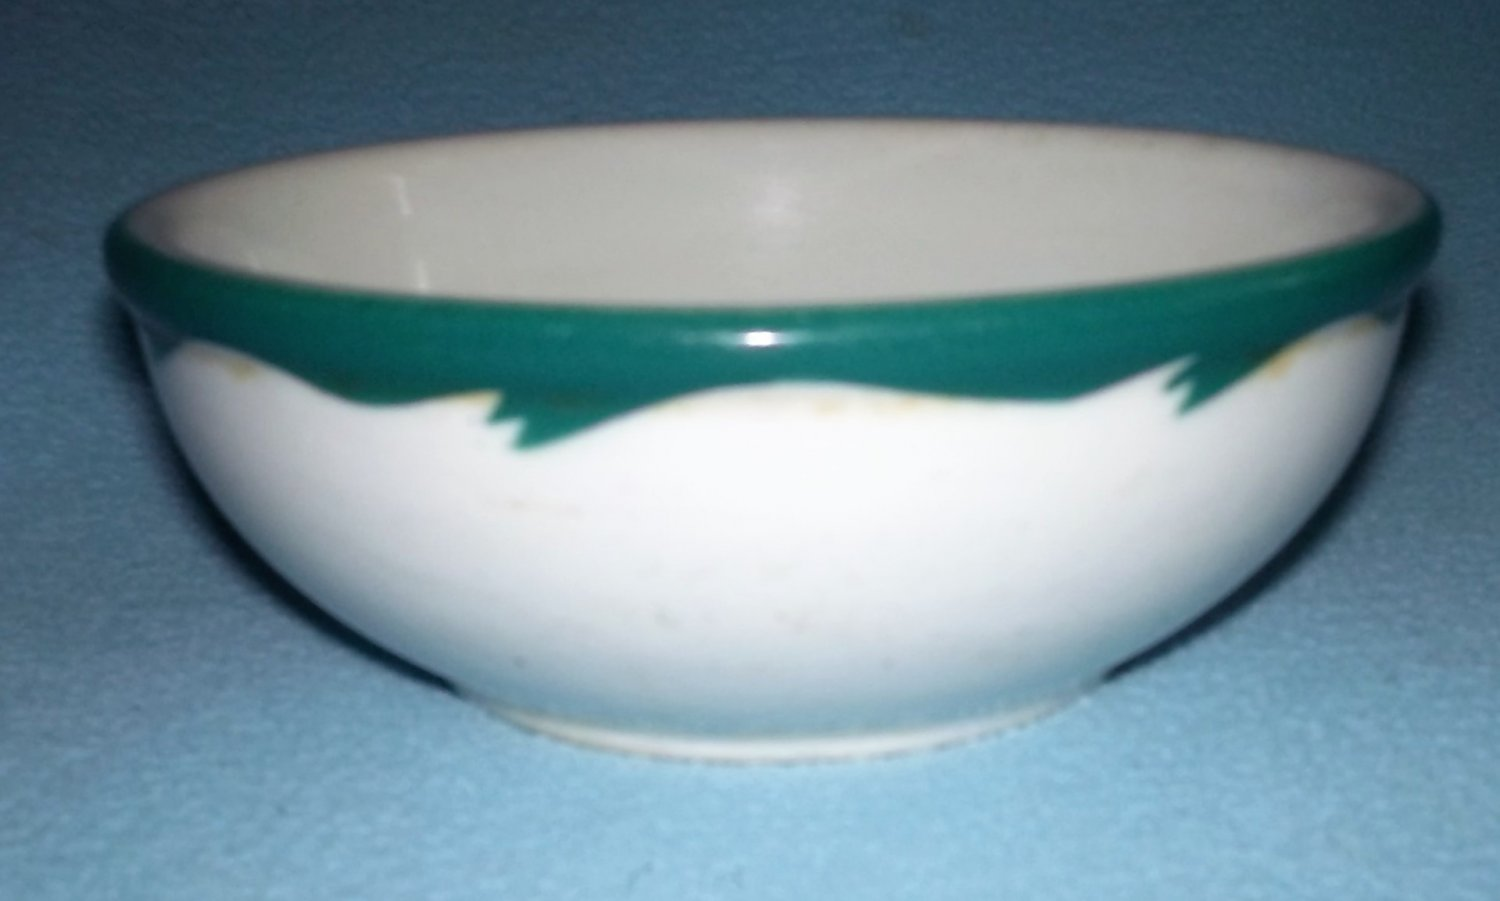 VINTAGE ABC Vitrified China BOWL Green Wave Design RESTAURANT WARE